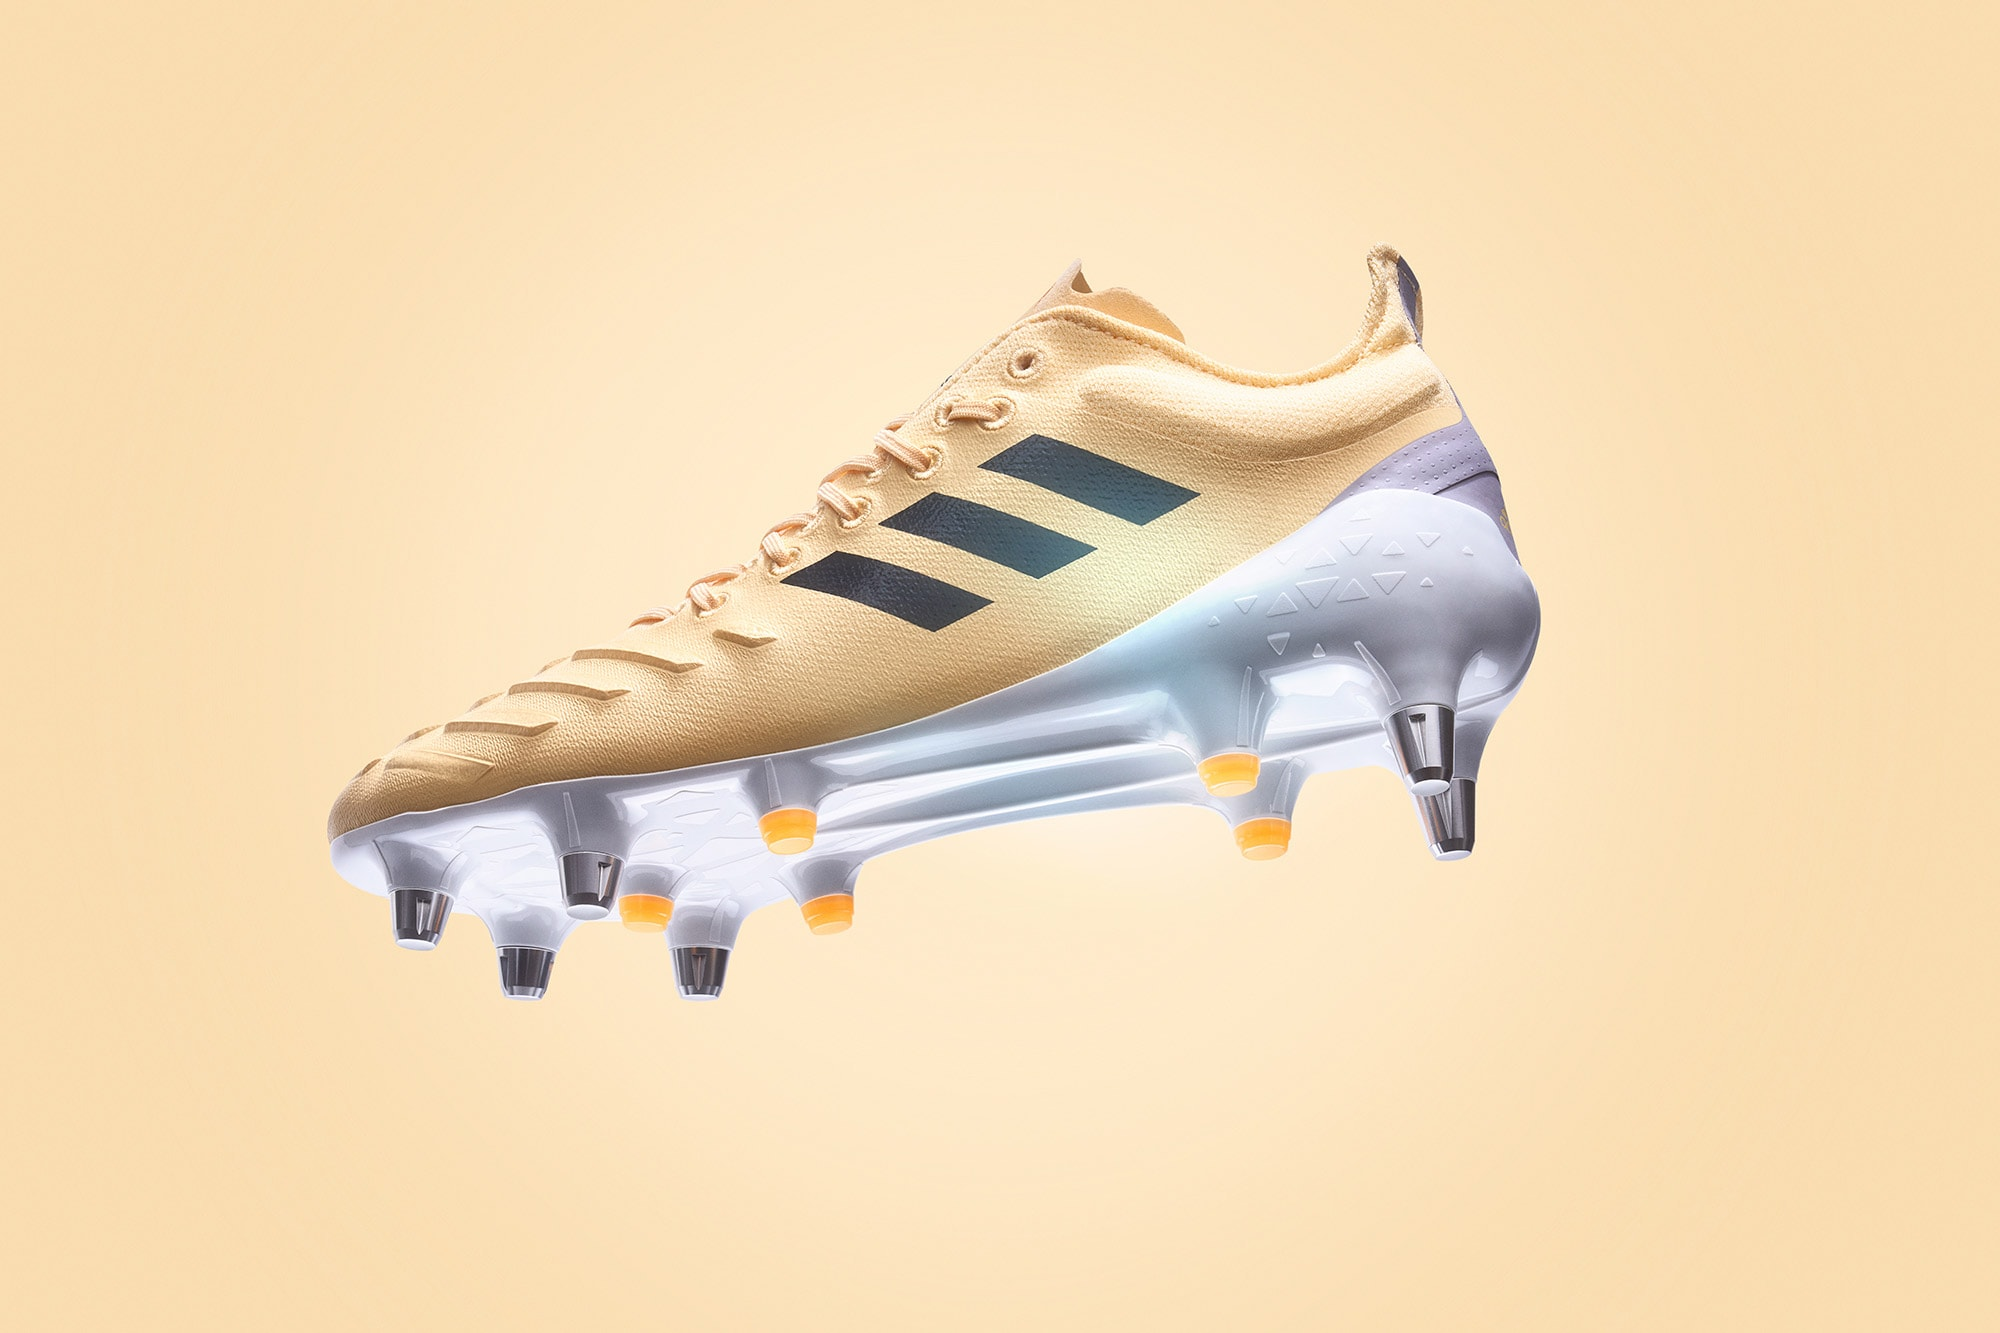 adidas predator xp soft ground rugby boot photographed in studio for adidas new zealand latest print campaign